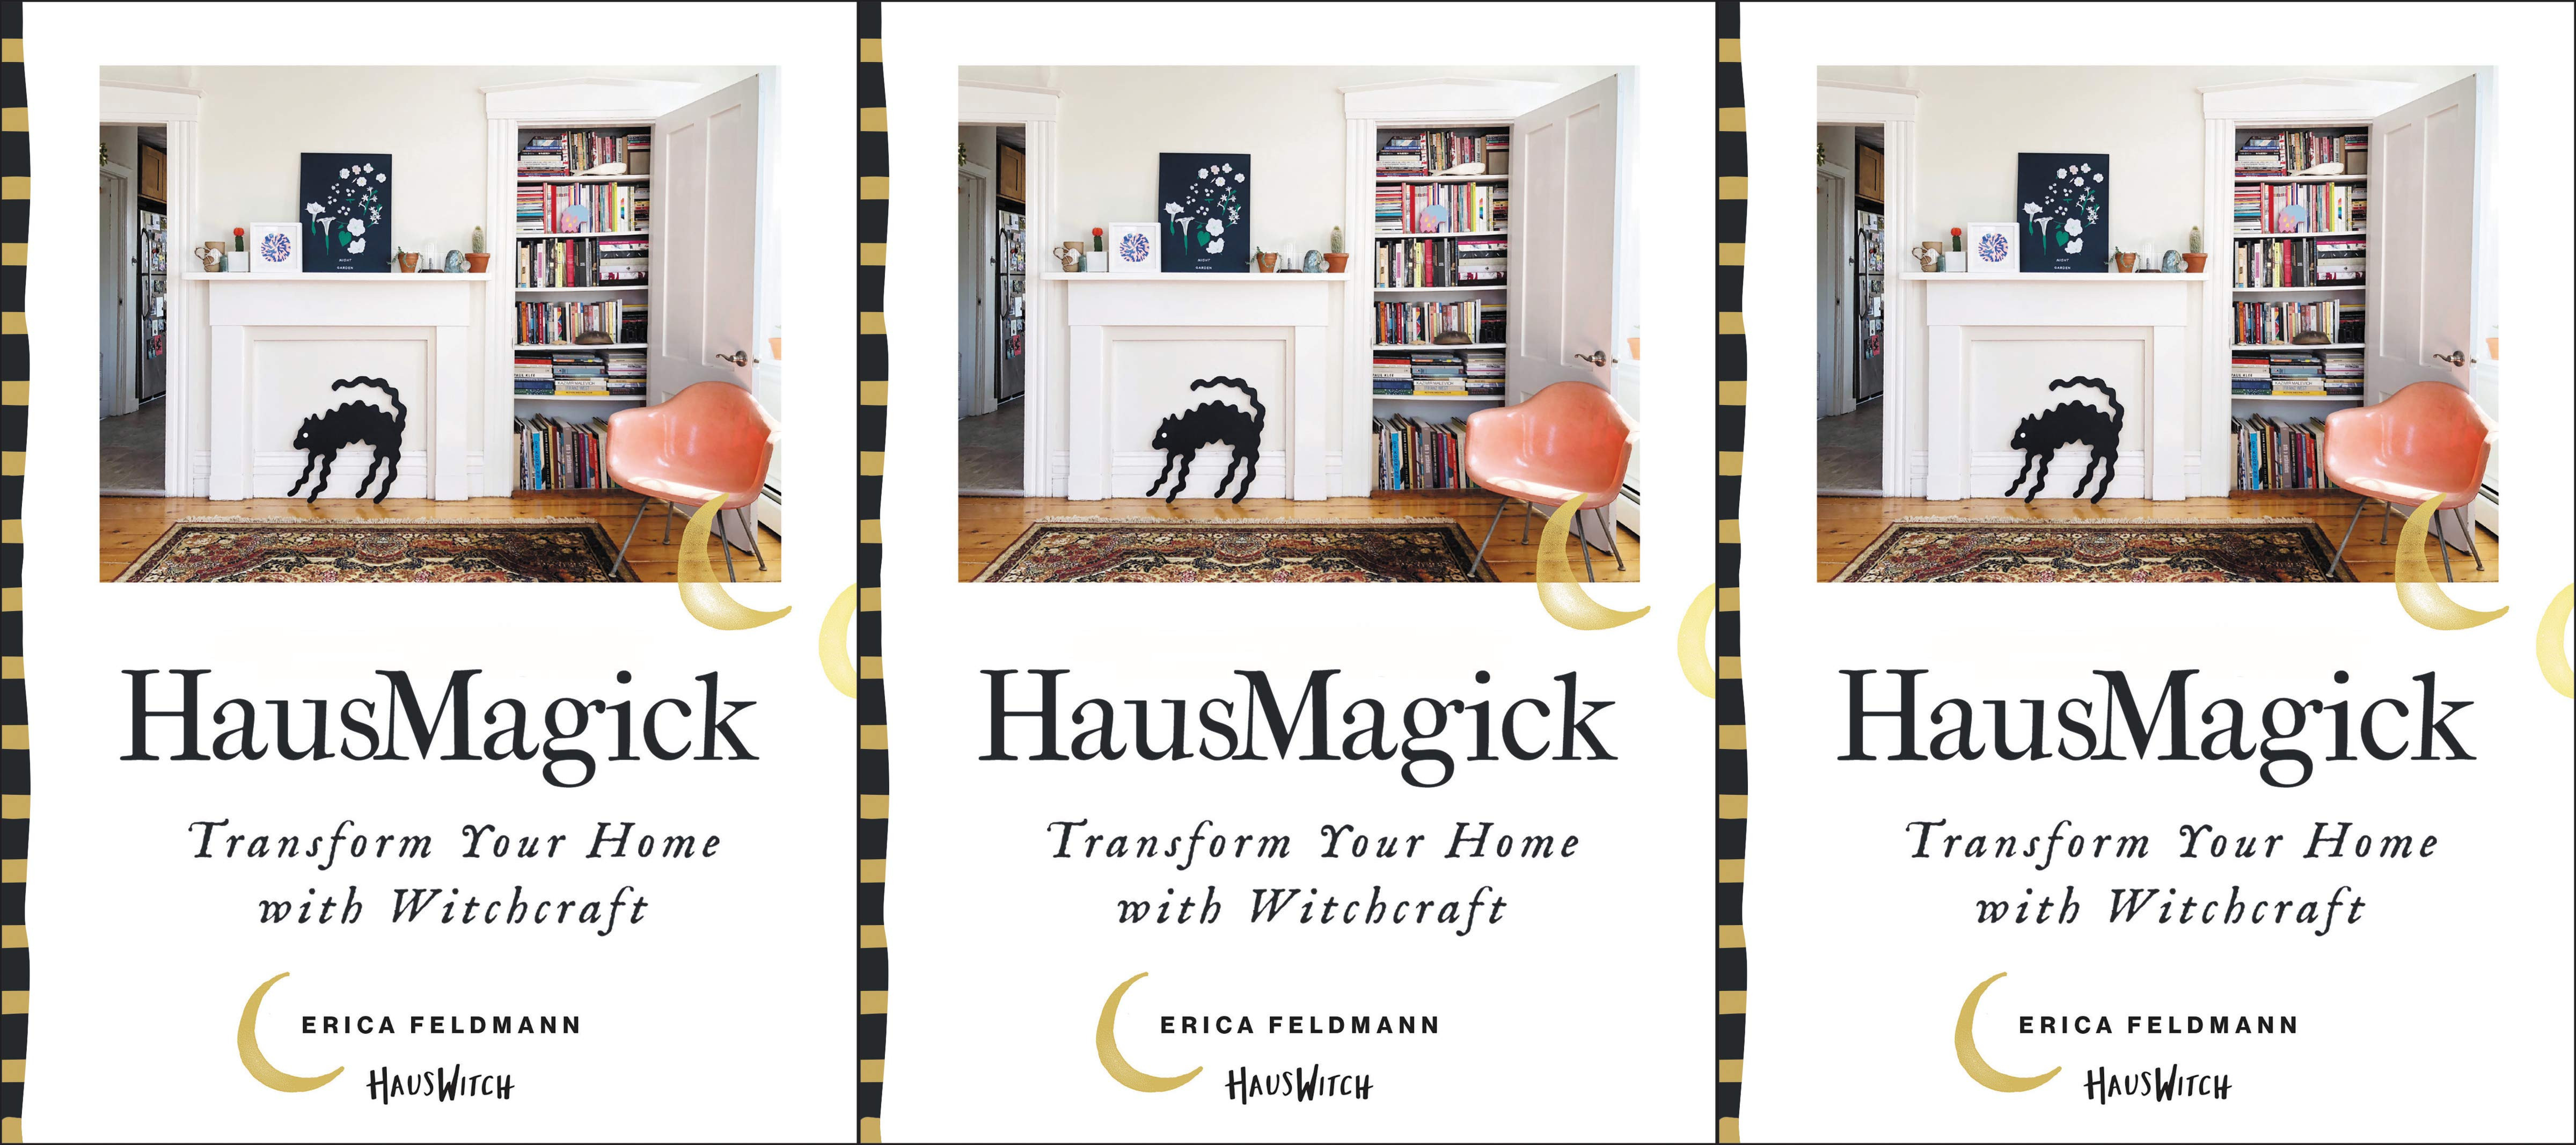 cheap coffee table books, hausmagick: transform your home with witchcraft by erica feldman, books